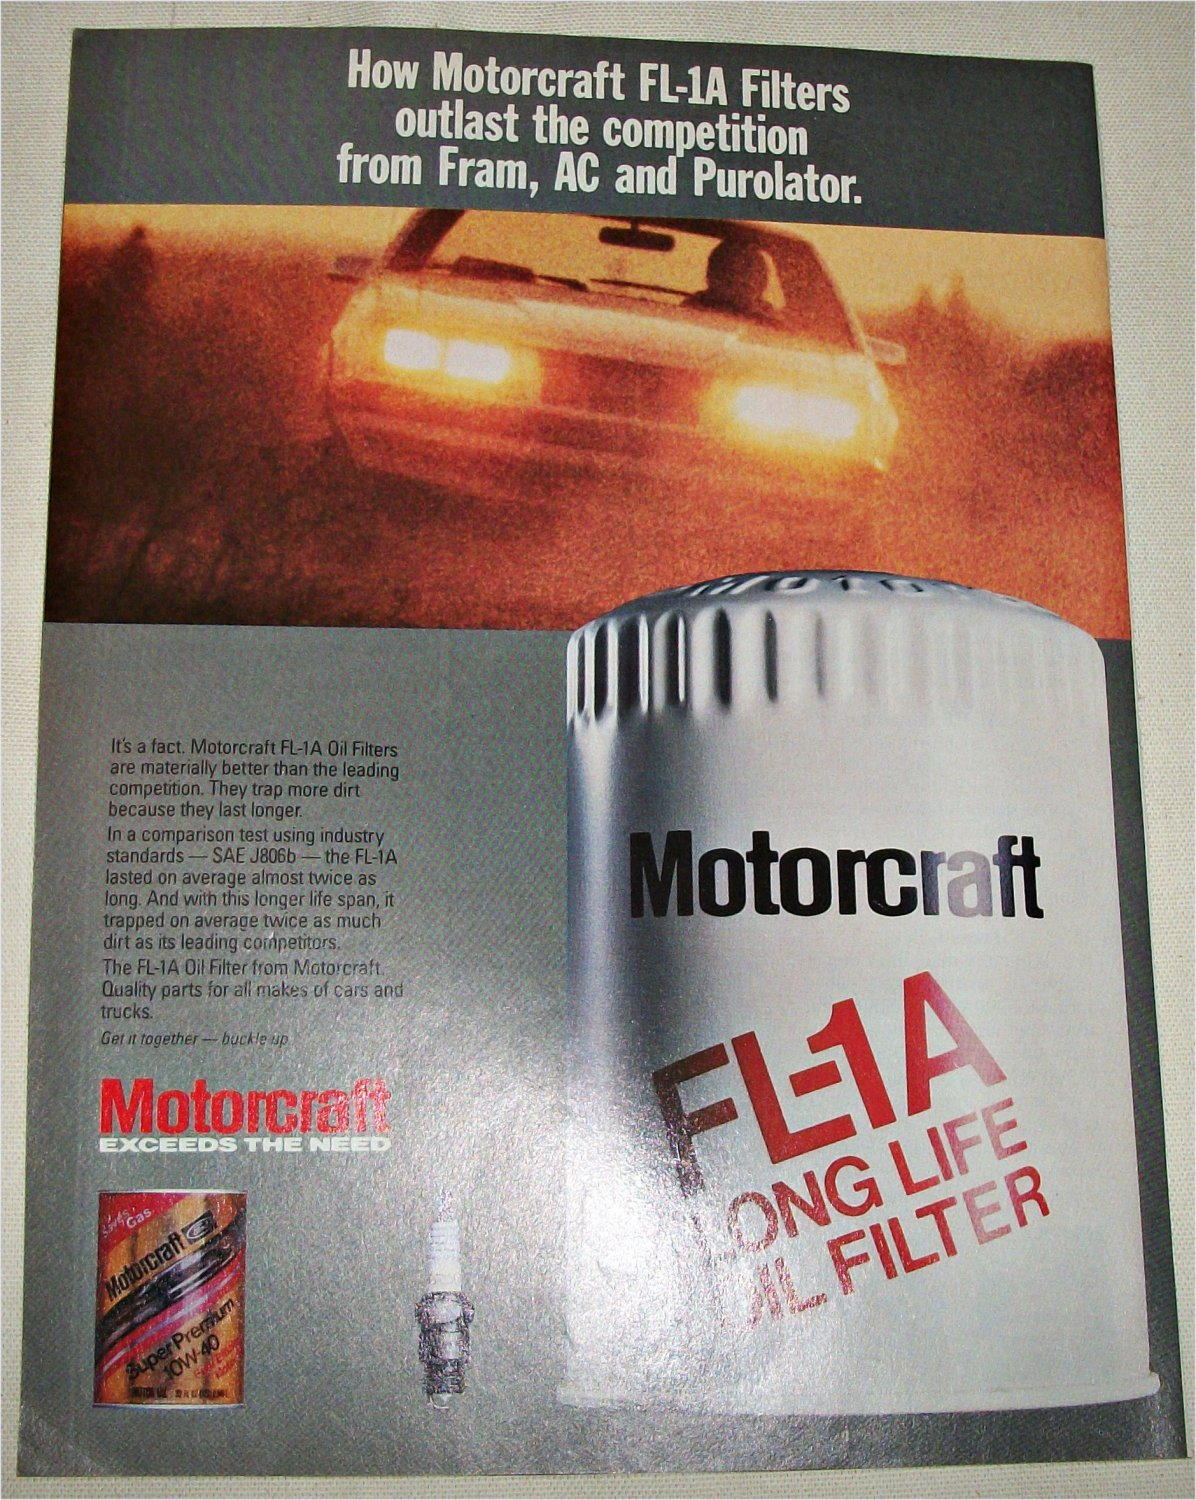 1985 Motorcraft FL1A Oil Filter ad